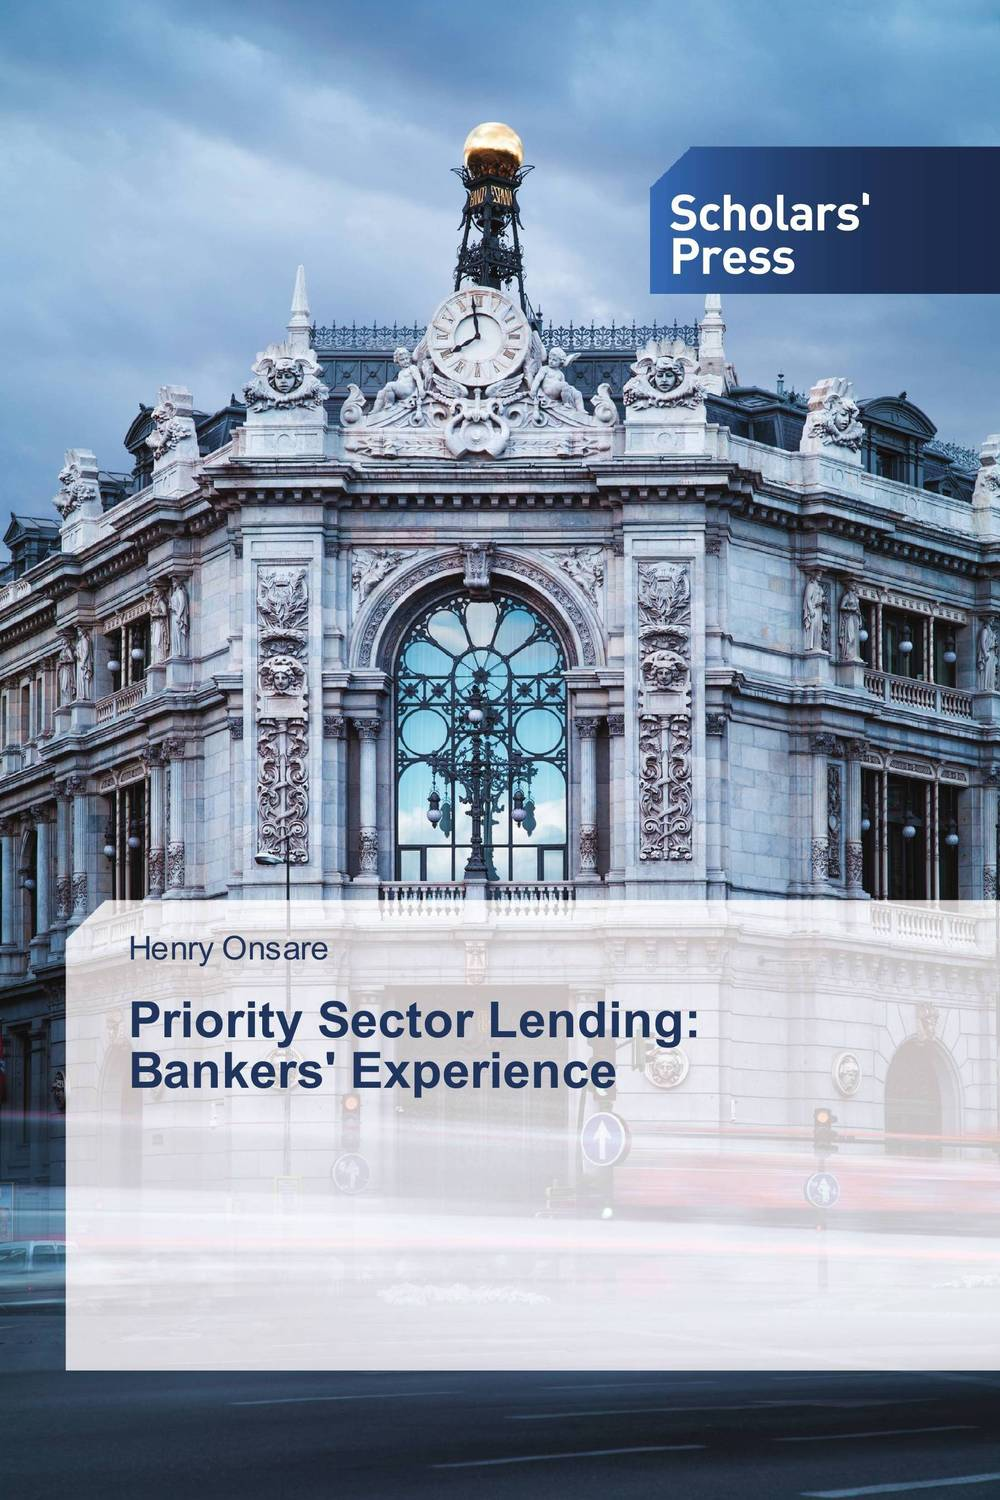 Priority Sector Lending: Bankers' Experience raised from the ground